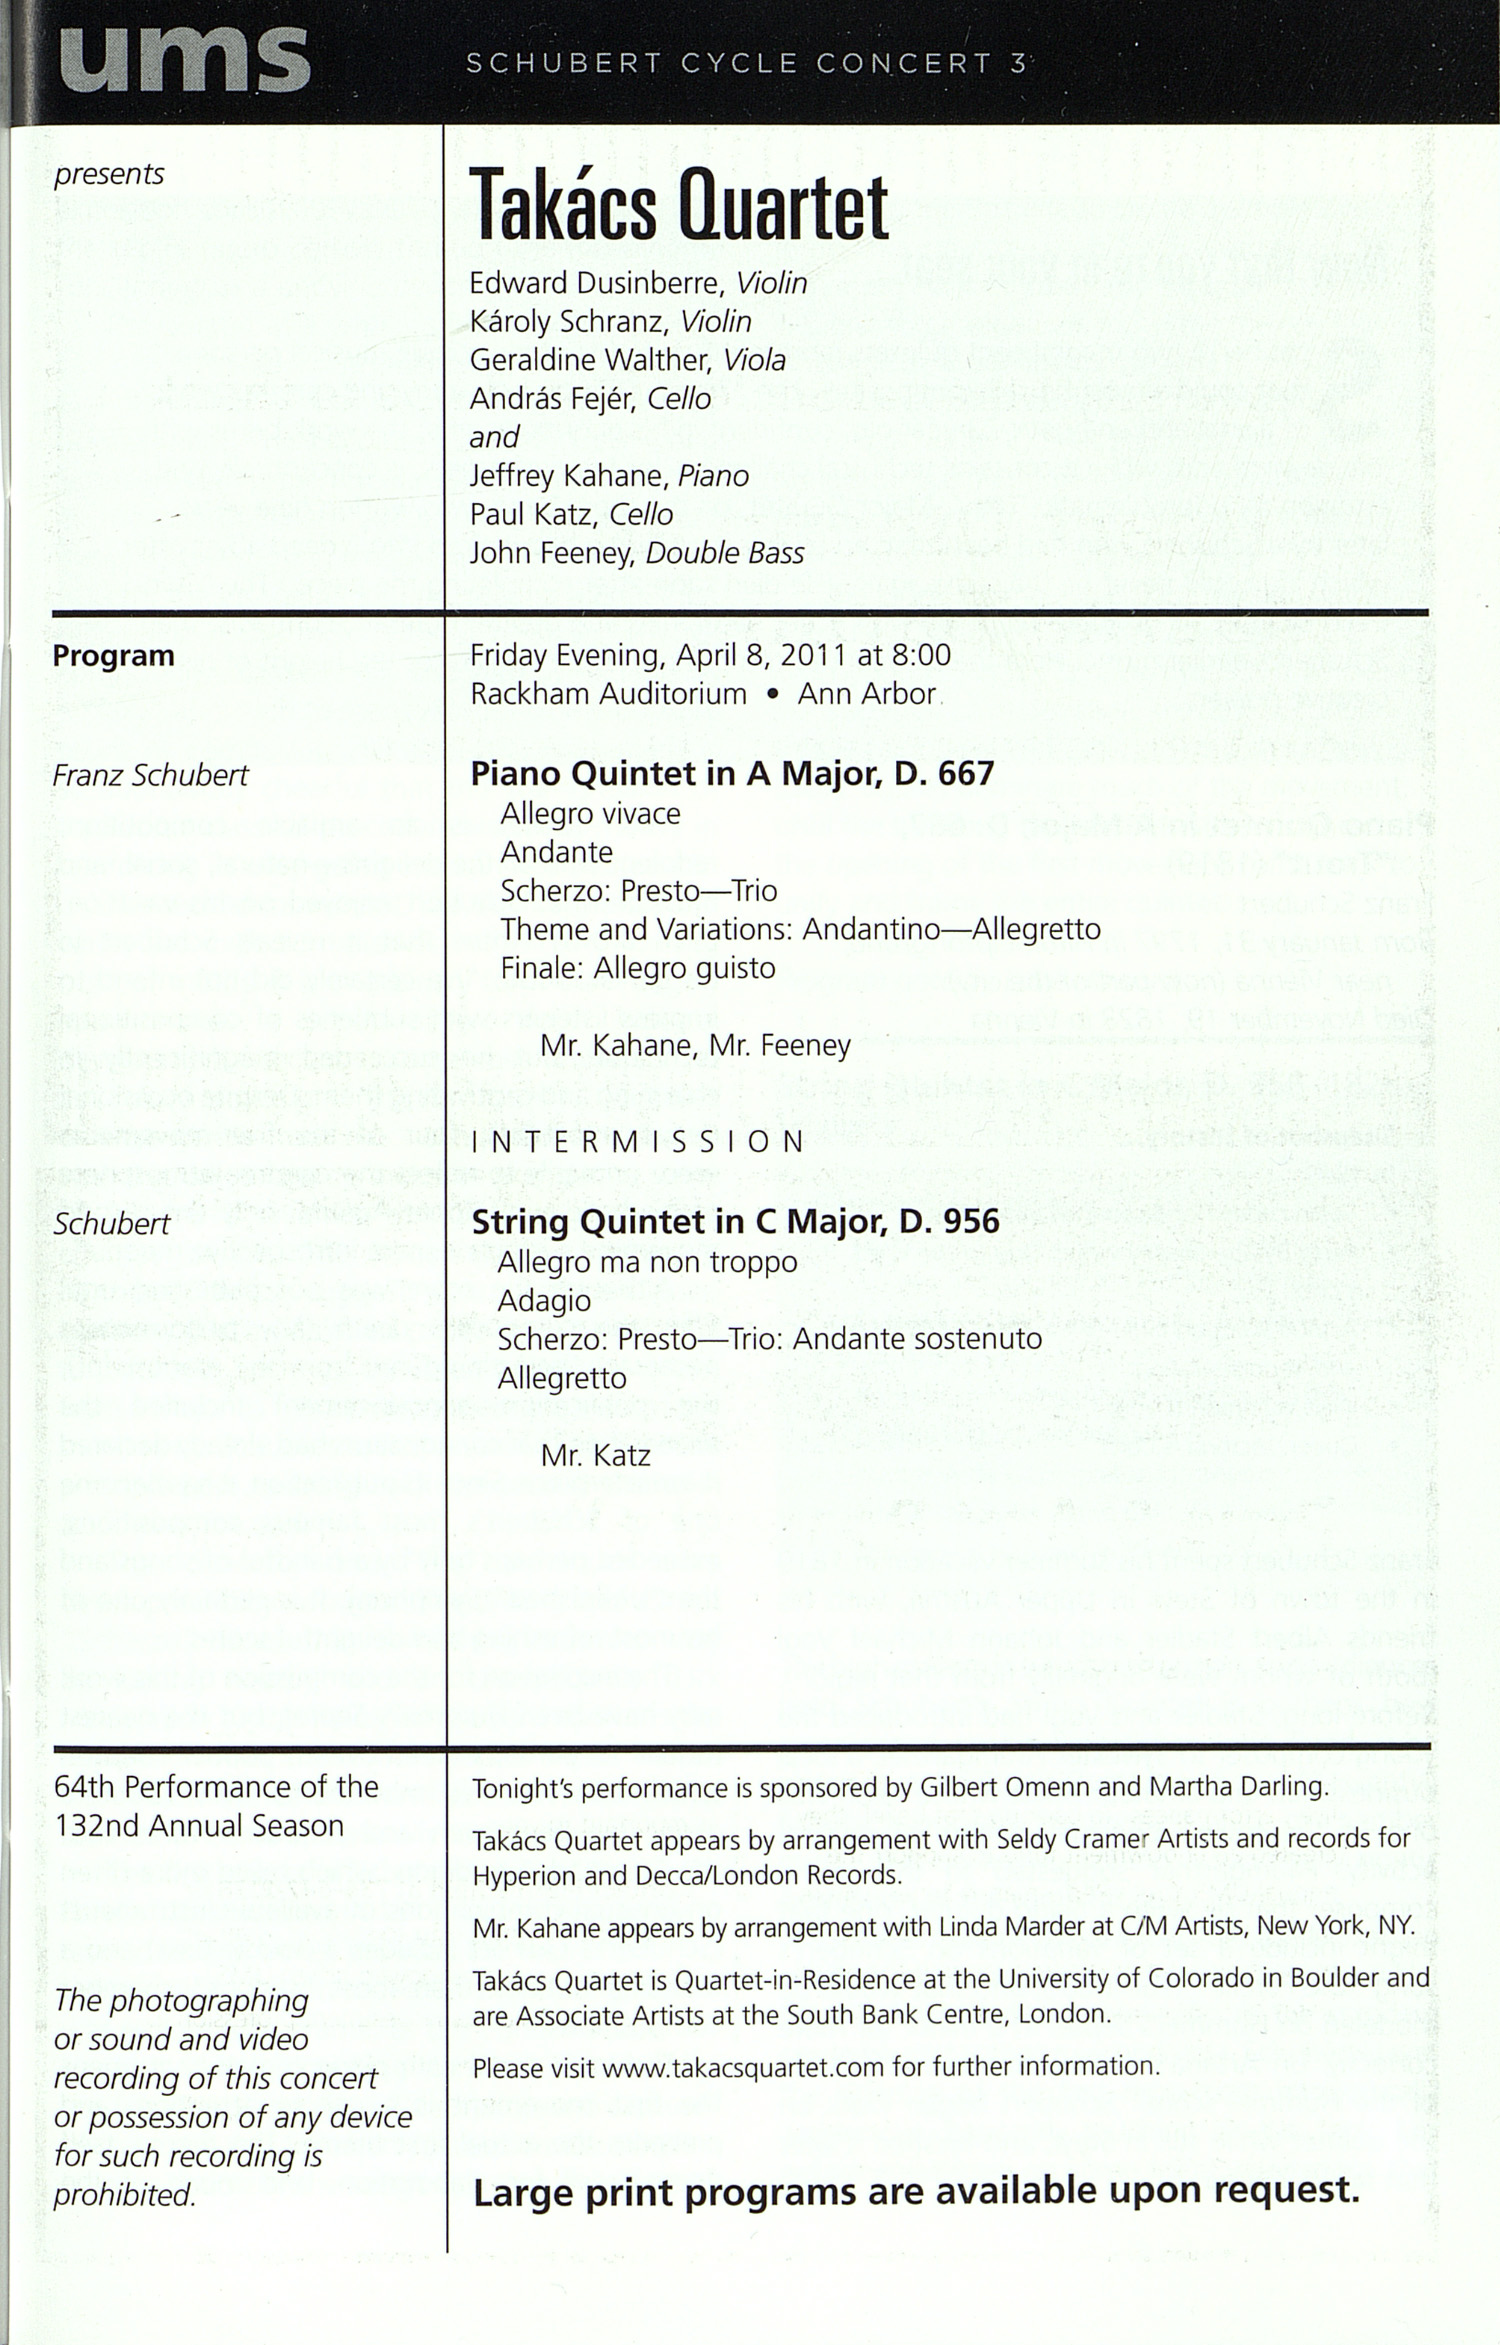 UMS Concert Program, Thursday Apr. 07 To 23: University Musical Society: Winter Spring 2011 - Thursday Apr. 07 To 23 --  image